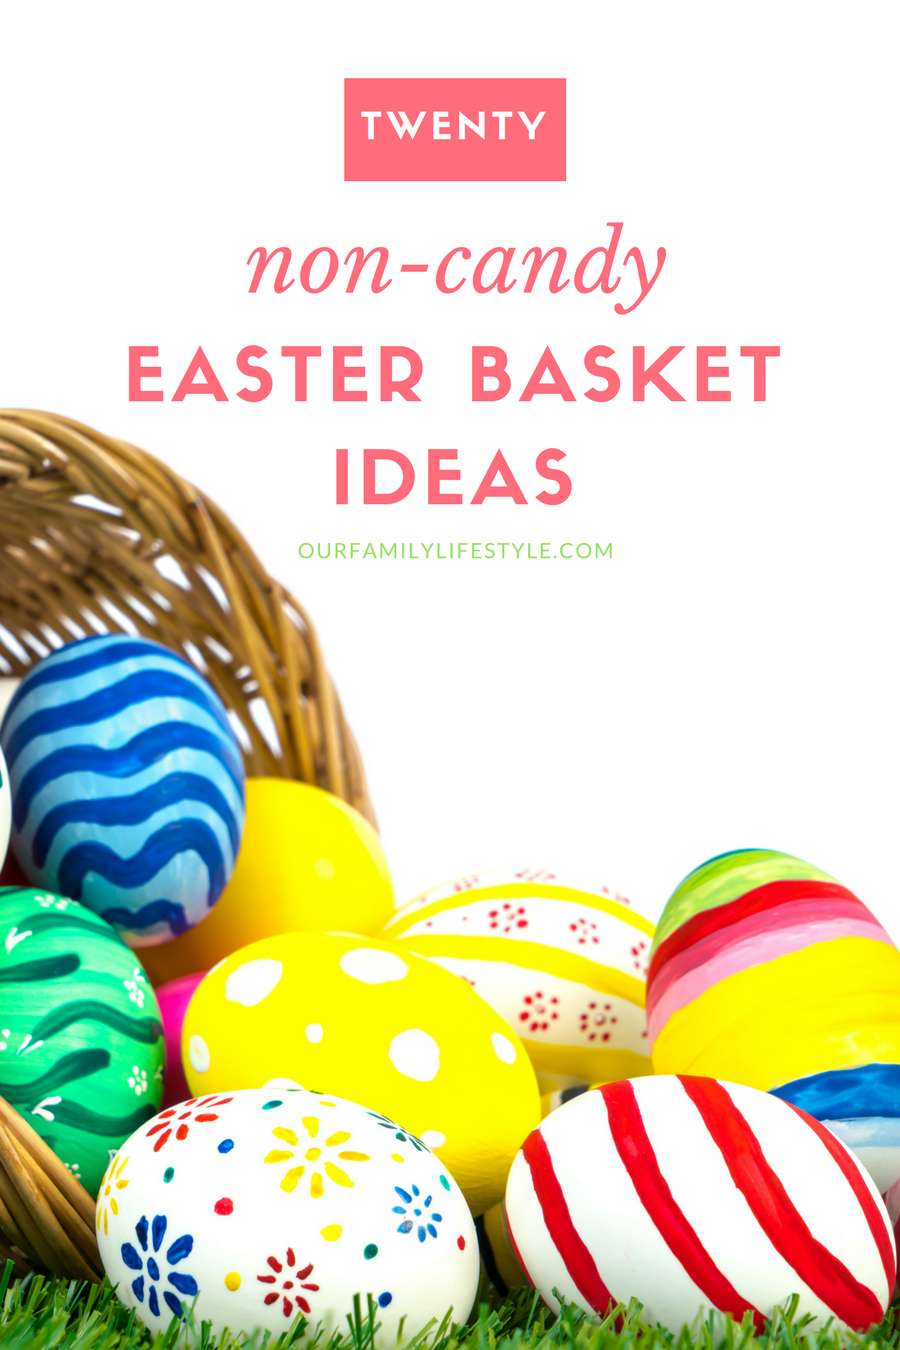 20 Non-Candy Easter Basket Ideas